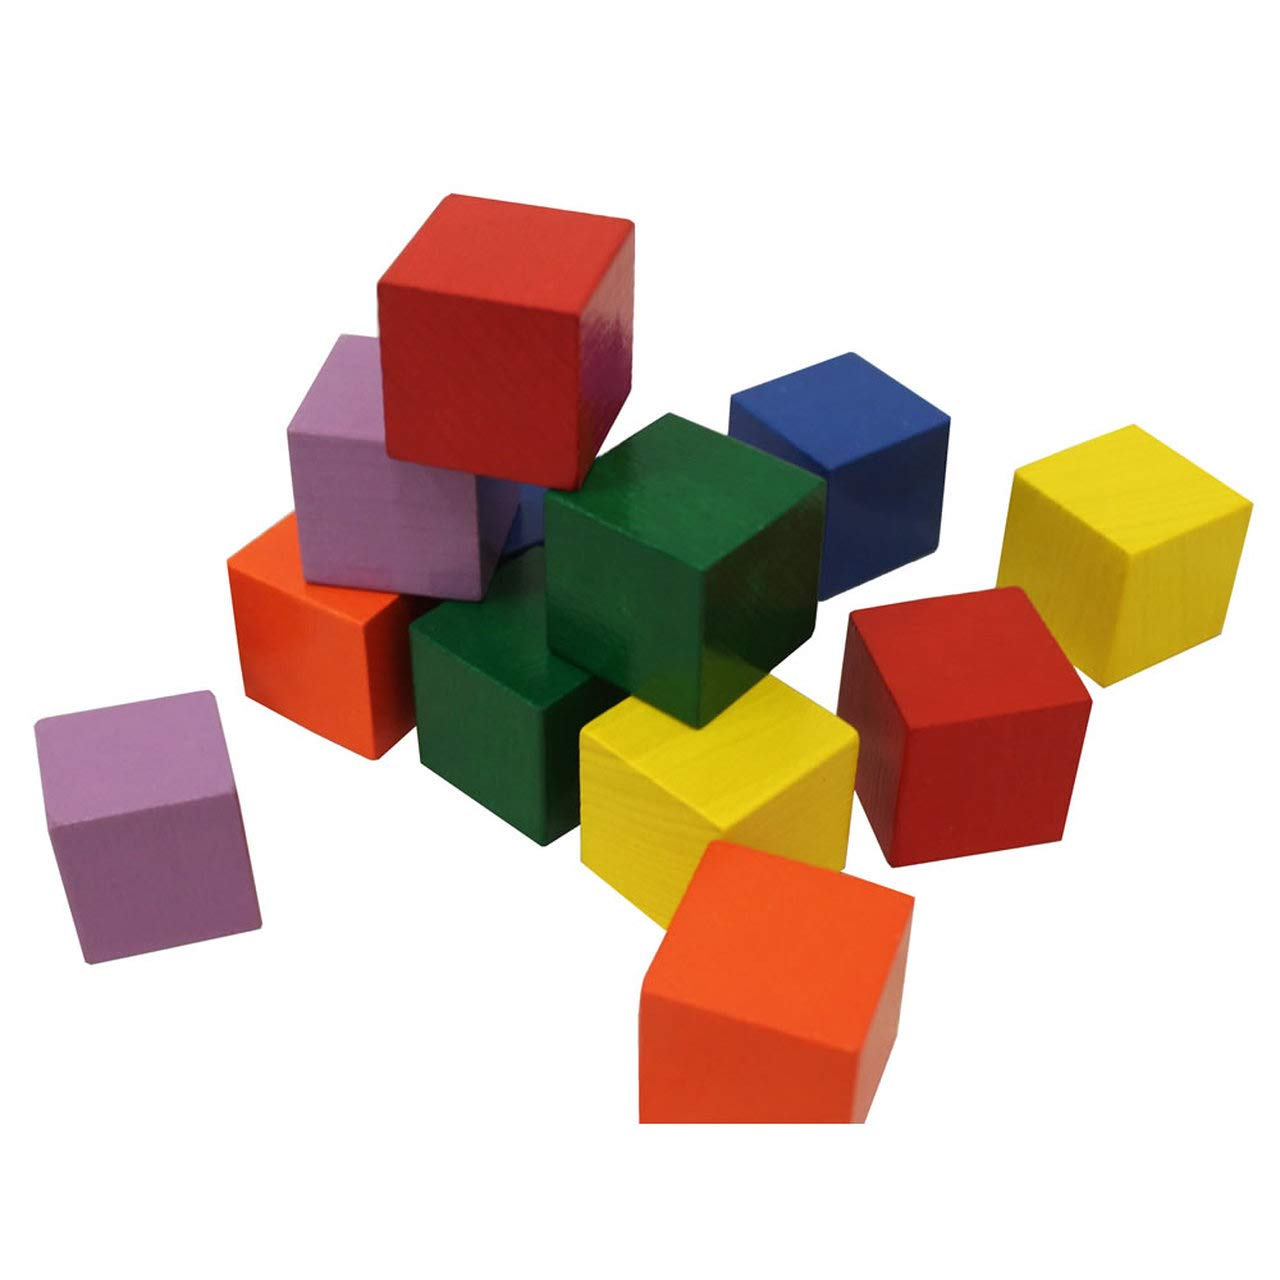 HABA Baby's First Basic Block Set - 12 Colorful Wooden Cubes (Made in Germany)